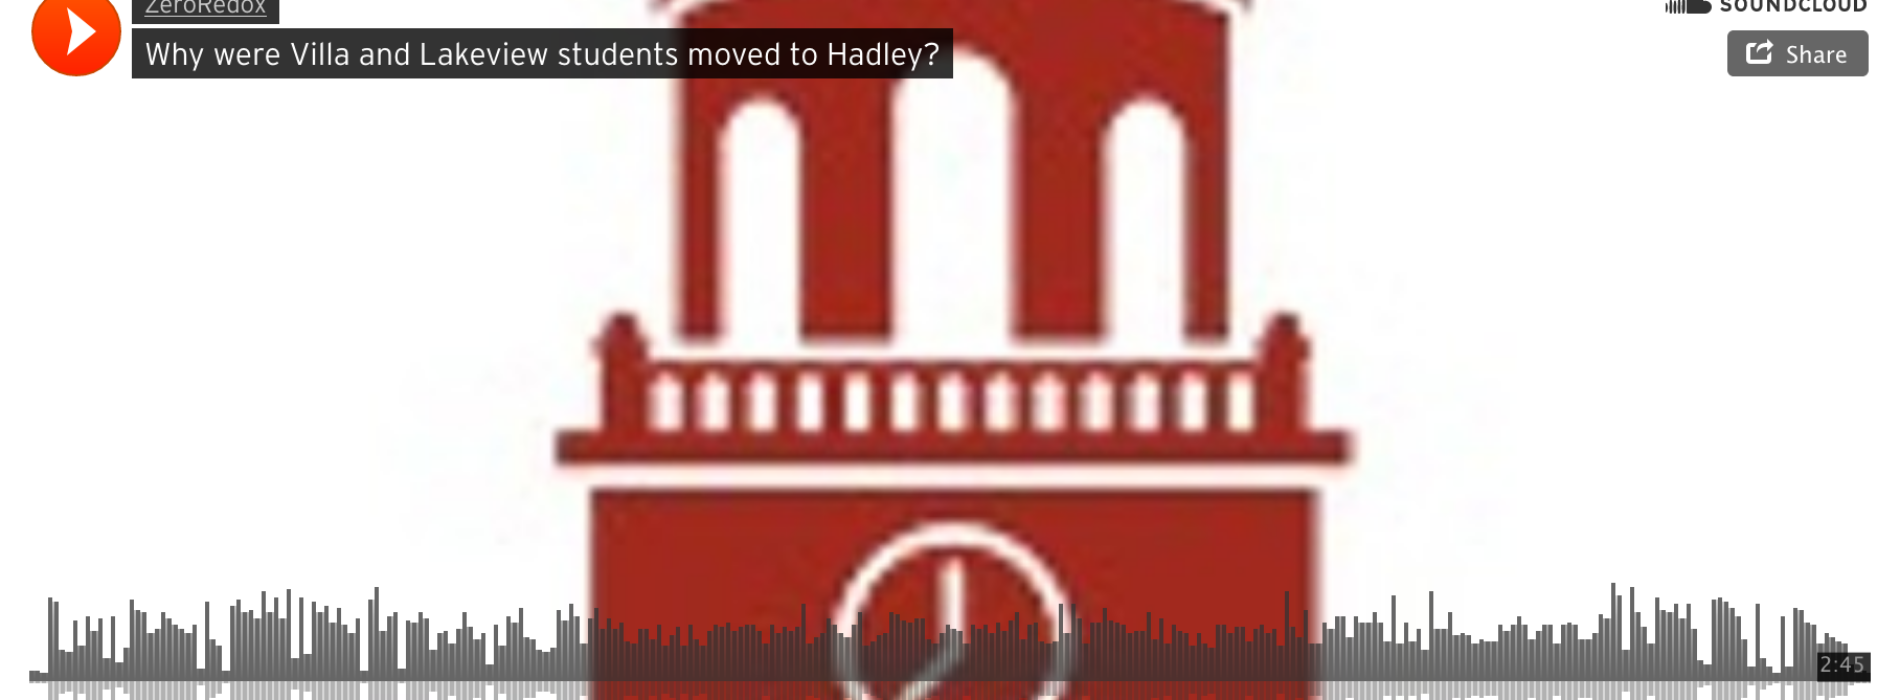 Why Were Villa and Lakeview Students Moved to Hadley? (Podcast)